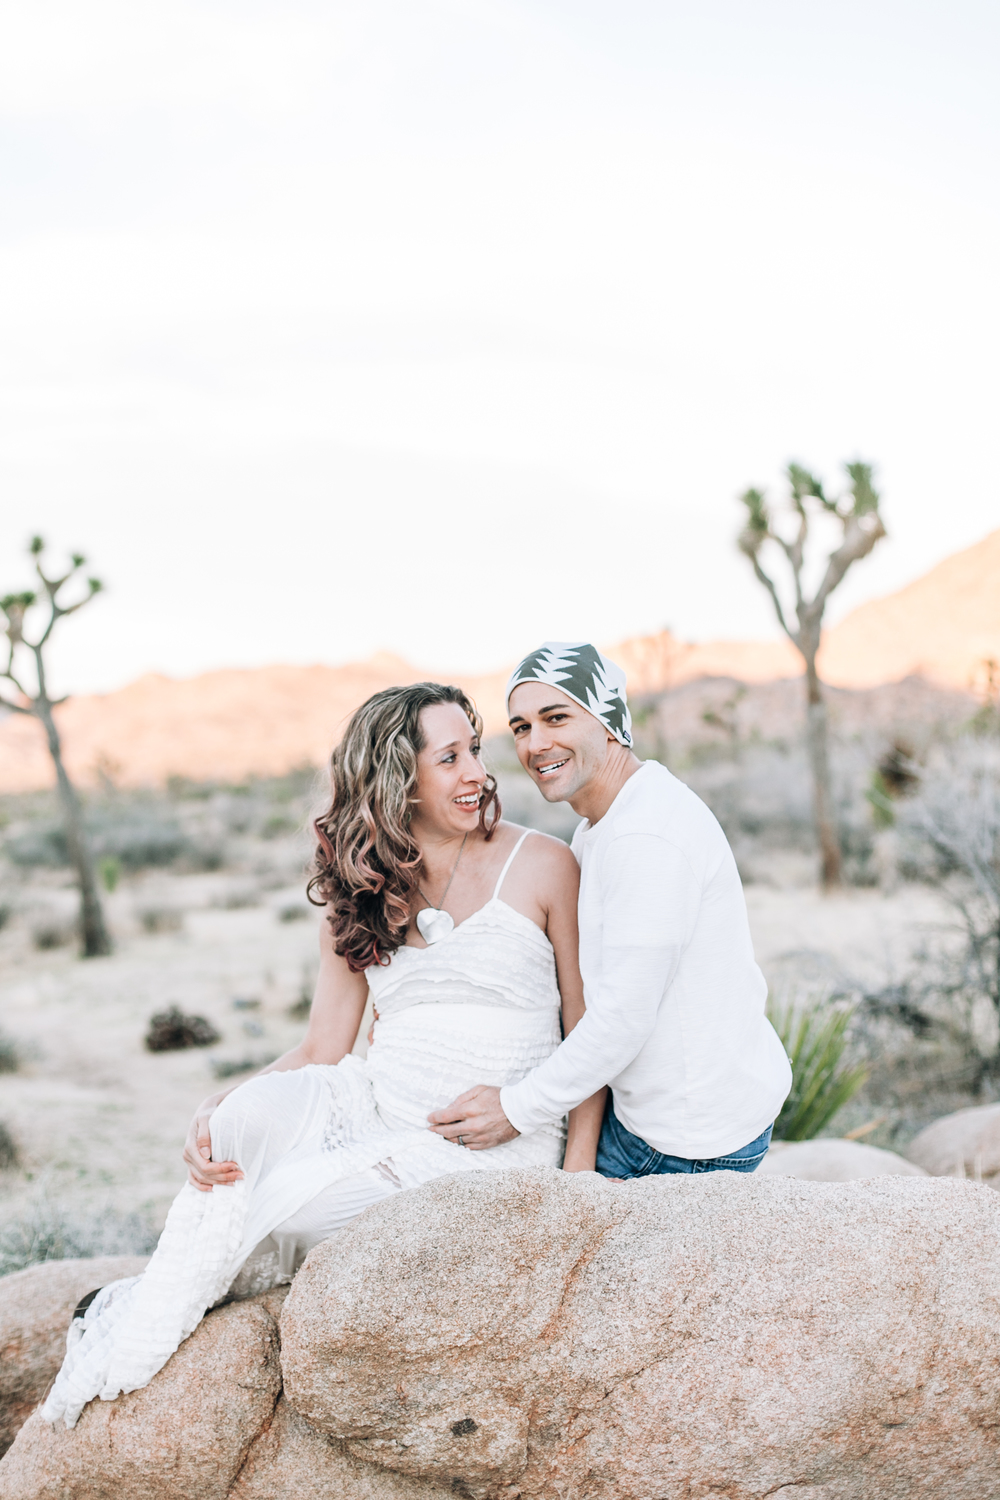 KaraNixonWeddings-JoshuaTree-Maternity-23.jpg